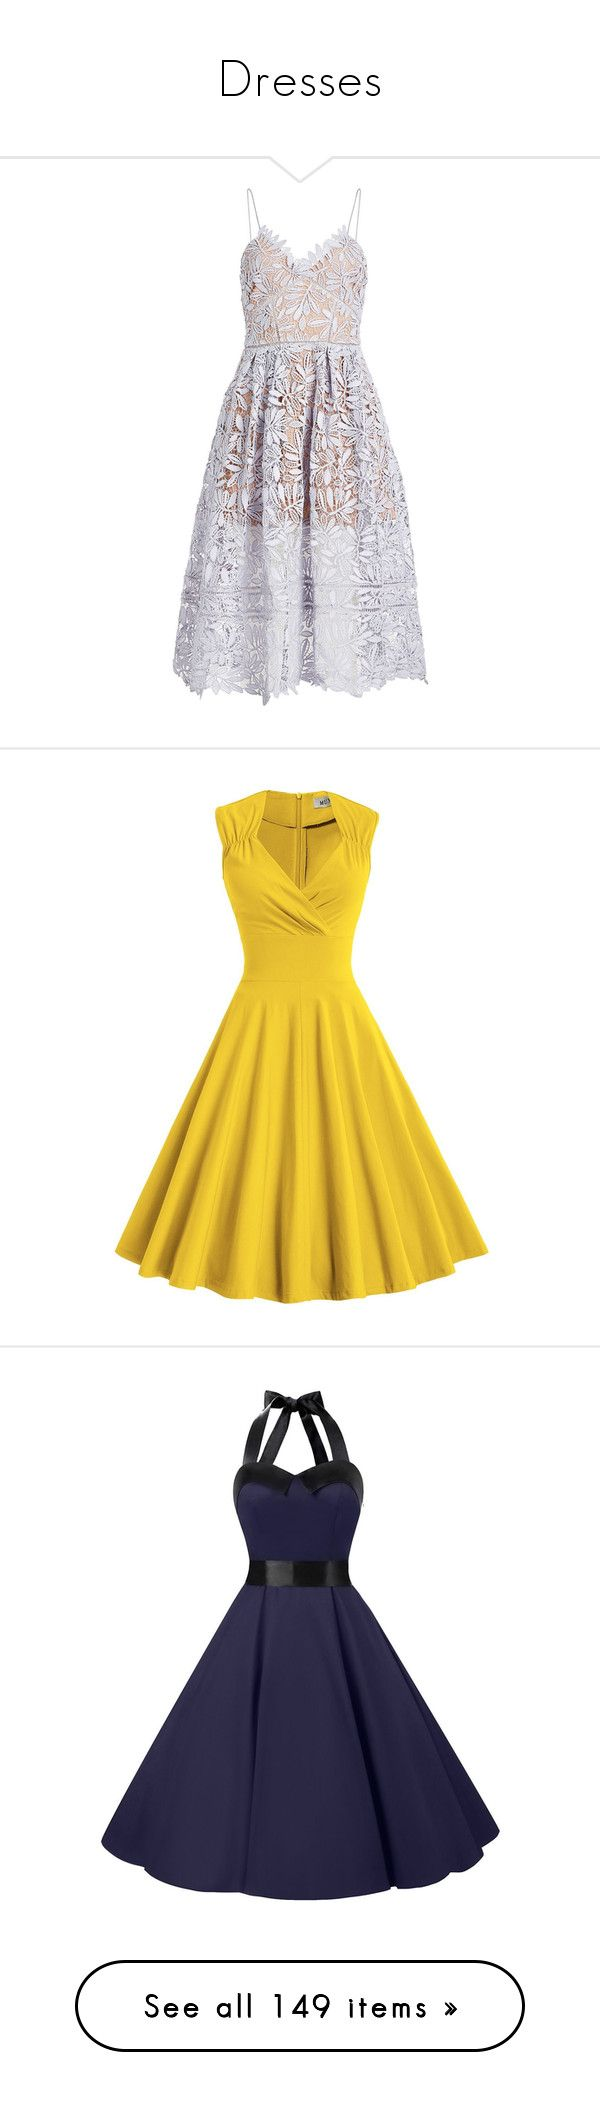 """""""Dresses"""" by thewizardingworld on Polyvore featuring dresses, blue, lace spaghetti strap dress, blue lace dress, tea party dresses, lace dress, blue dress, v neckline dress, yellow vintage dress and v-neck dresses"""